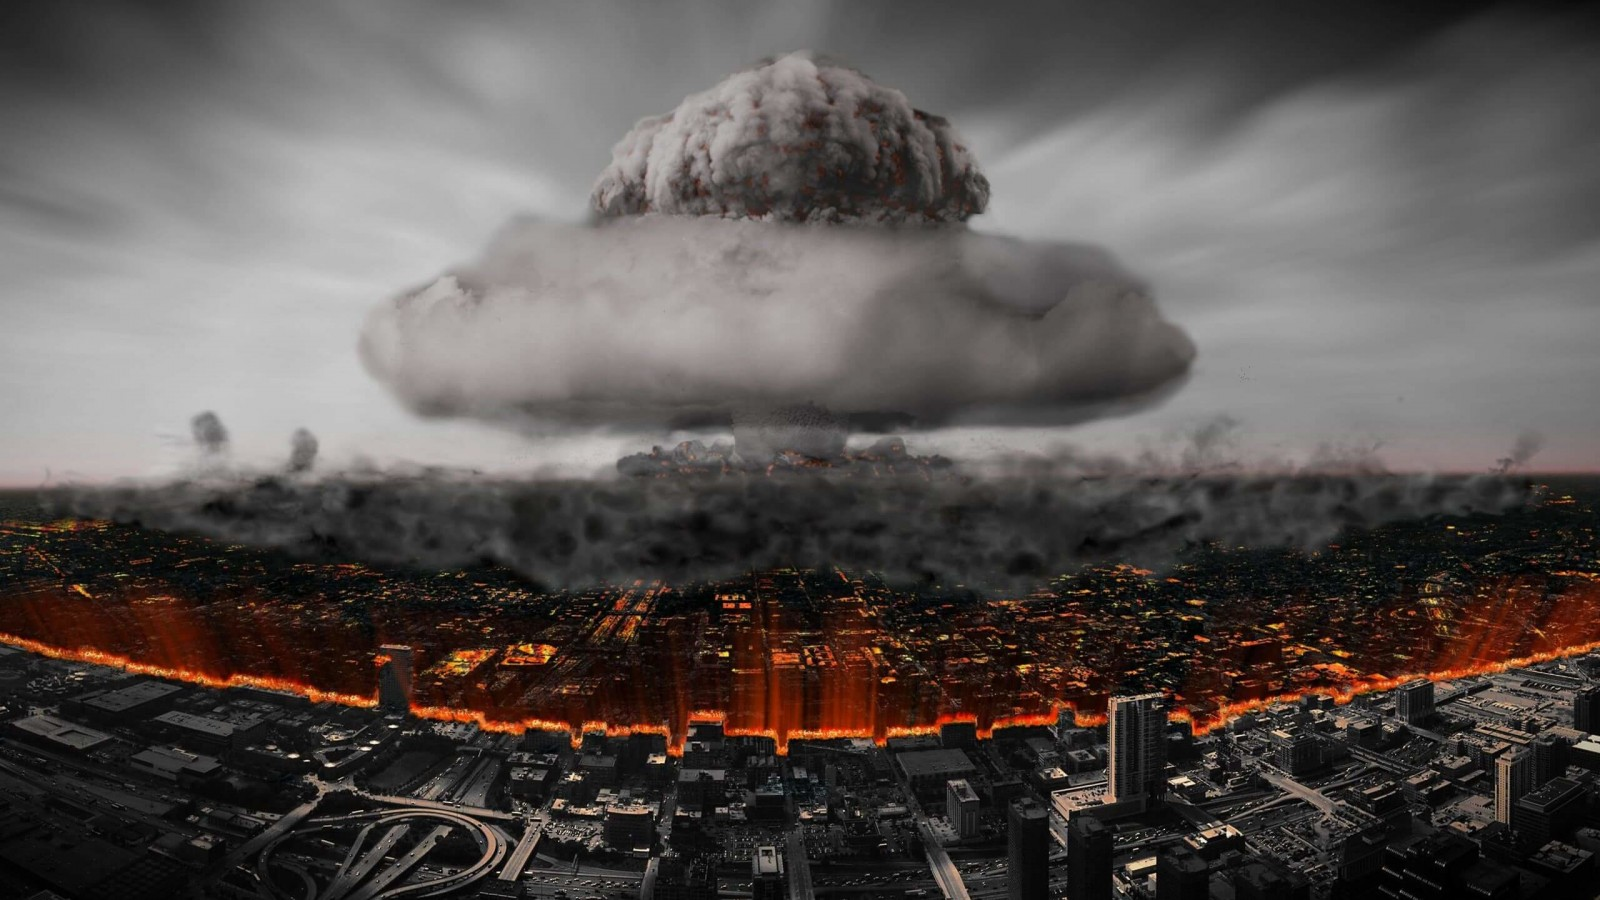 Nuclear Mushroom Cloud Wallpaper for Desktop 1600x900